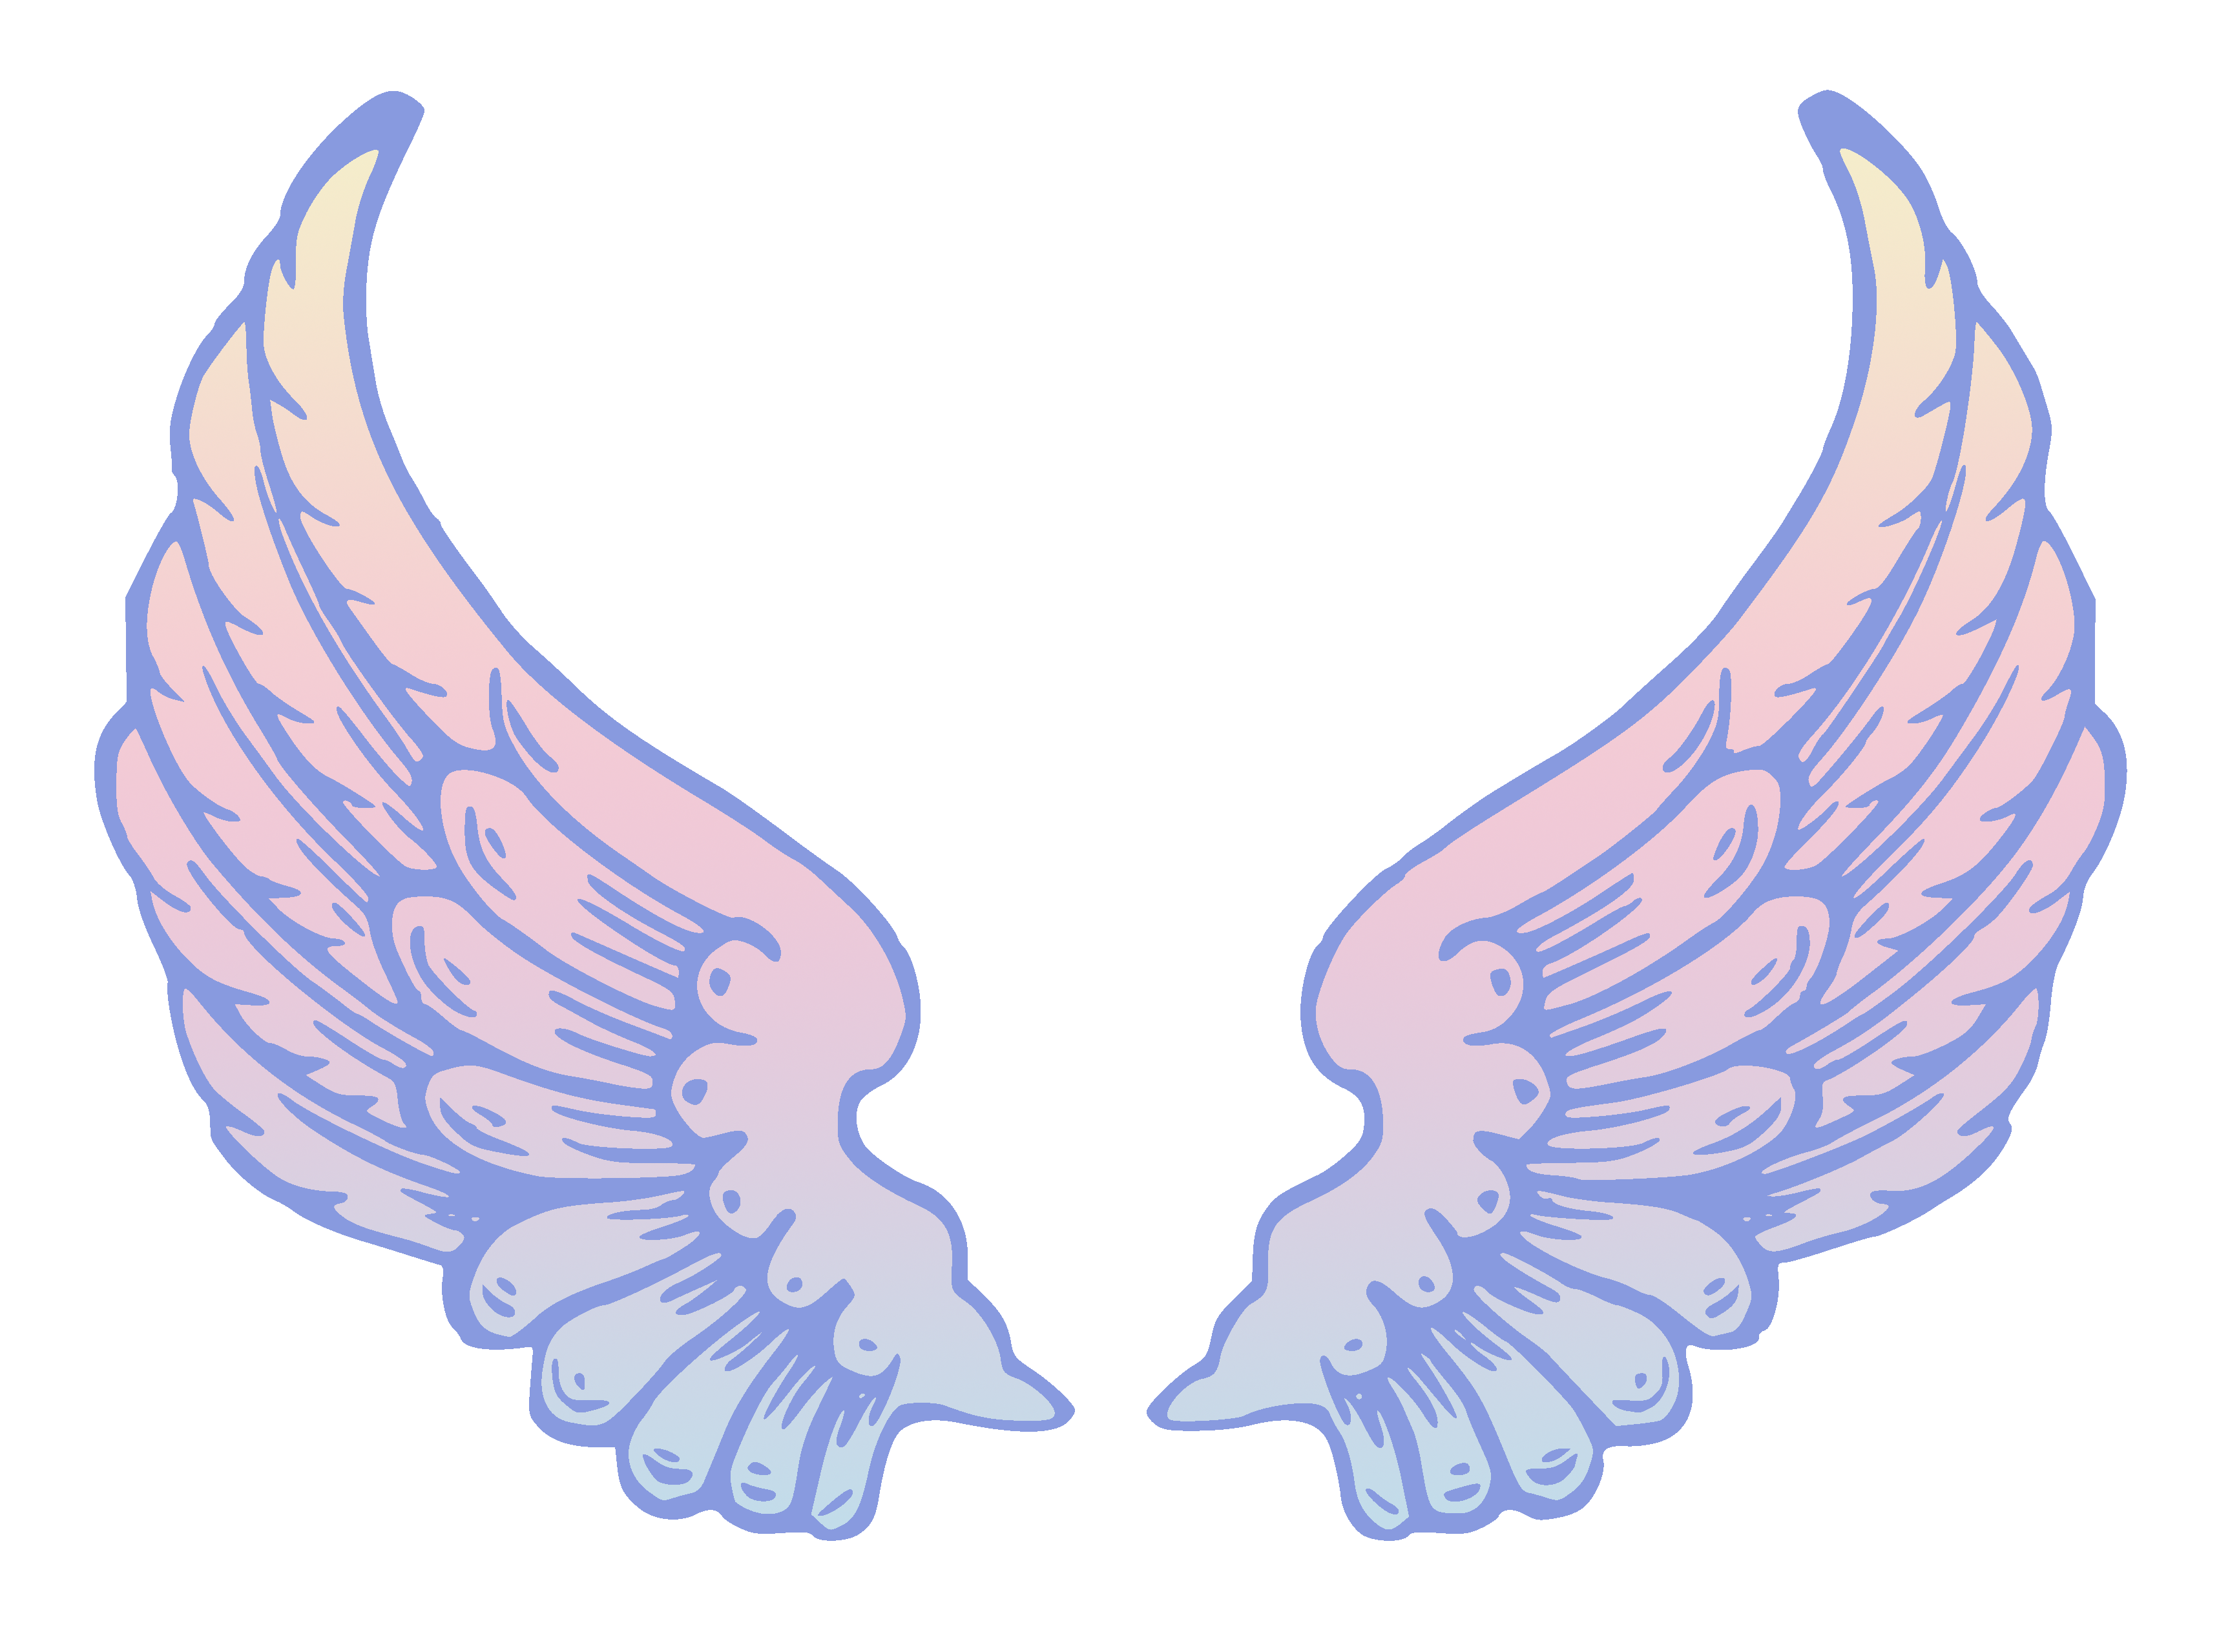 Angel Wing Clipart Free Download Clip Art.